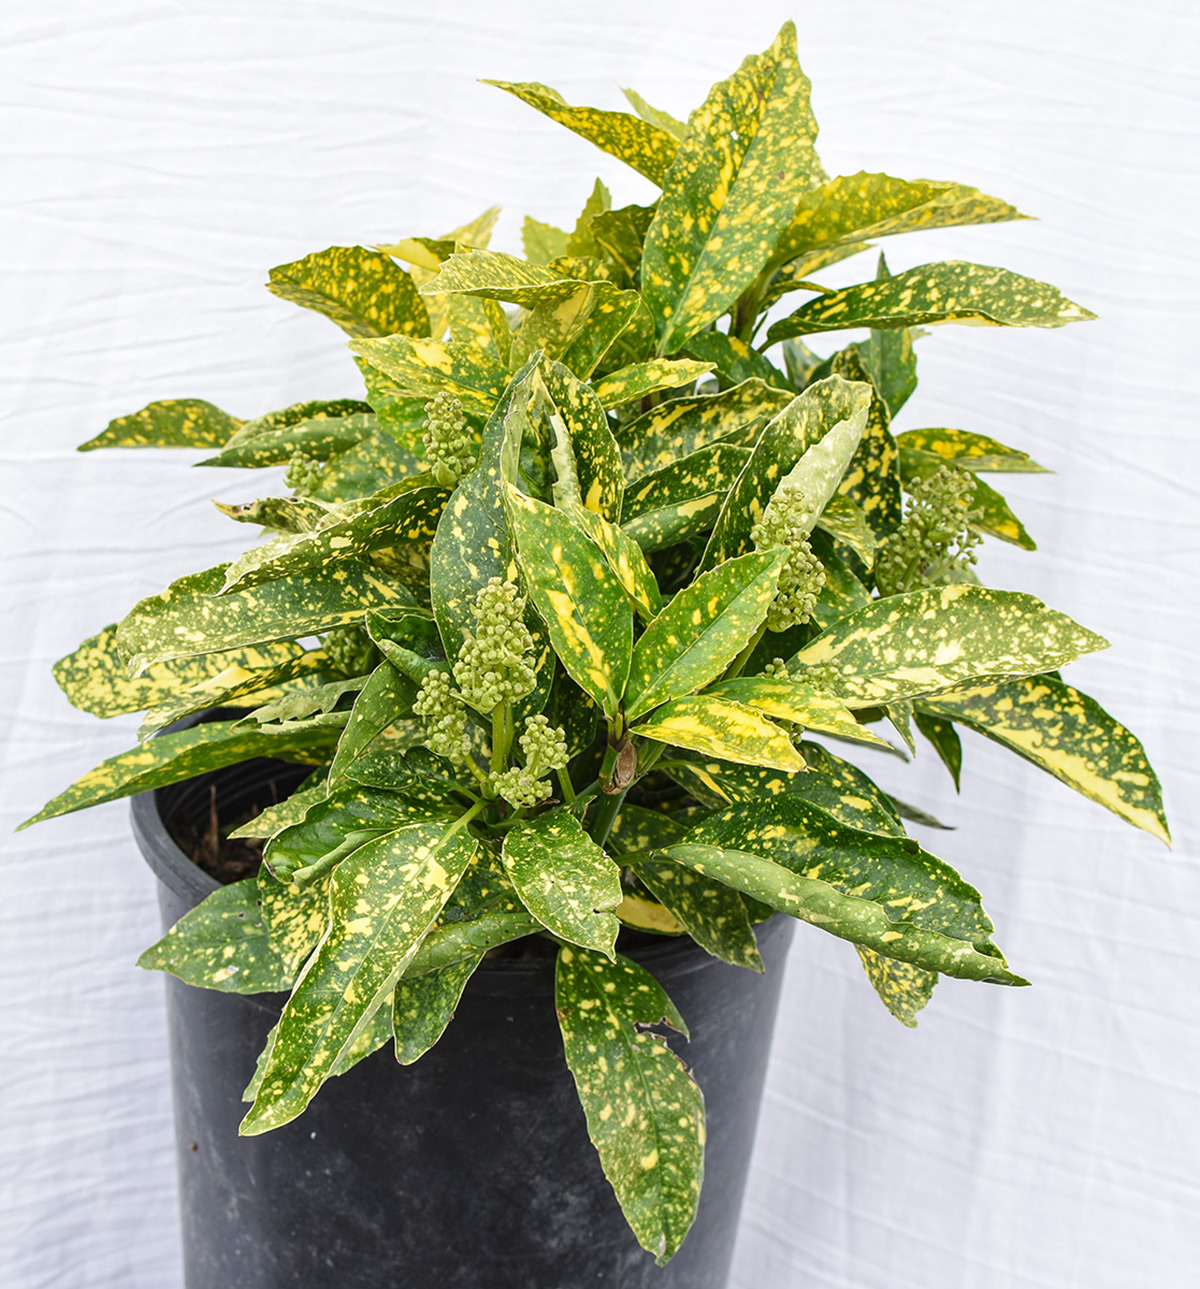 Gold Dust Plant Green And Gold House Plant on green and purple plant, strawberry begonia plant, green with yellow flowers ground cover, coprosma mirror plant, hardy banana plant, black and gold plant, foam flower plant, twin leaf plant, malawi gold plant, green leafy plants, eastern smooth beardtongue plant, fly poison plant, coprosma marble queen plant, green cordyline plants, coleonema sunset gold plant, green and white grass plant, green plants with flowers, sundrops plant, florida gold plant, emerald and gold plant,